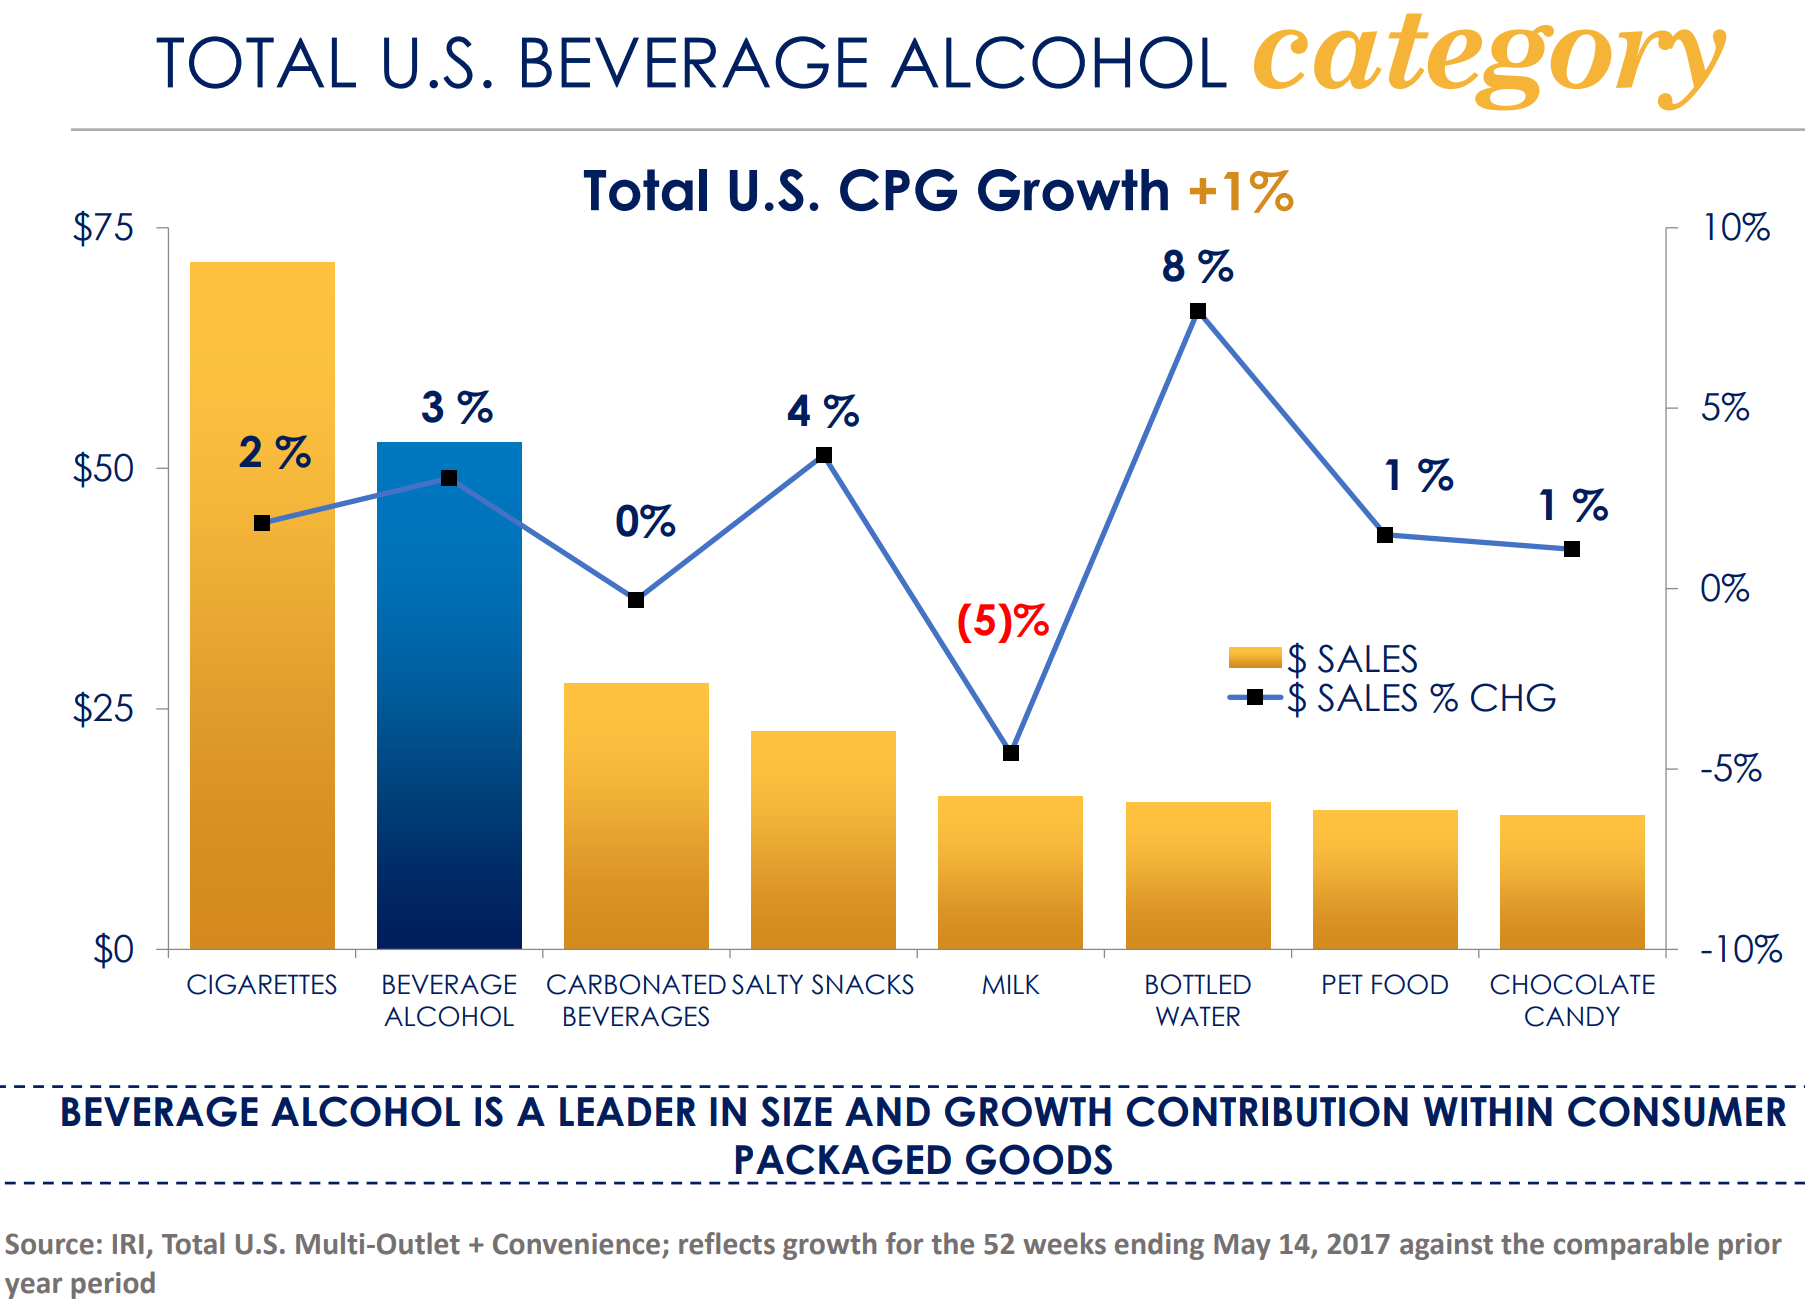 Constellation Brands (STZ) Price Target Raised to $226.00